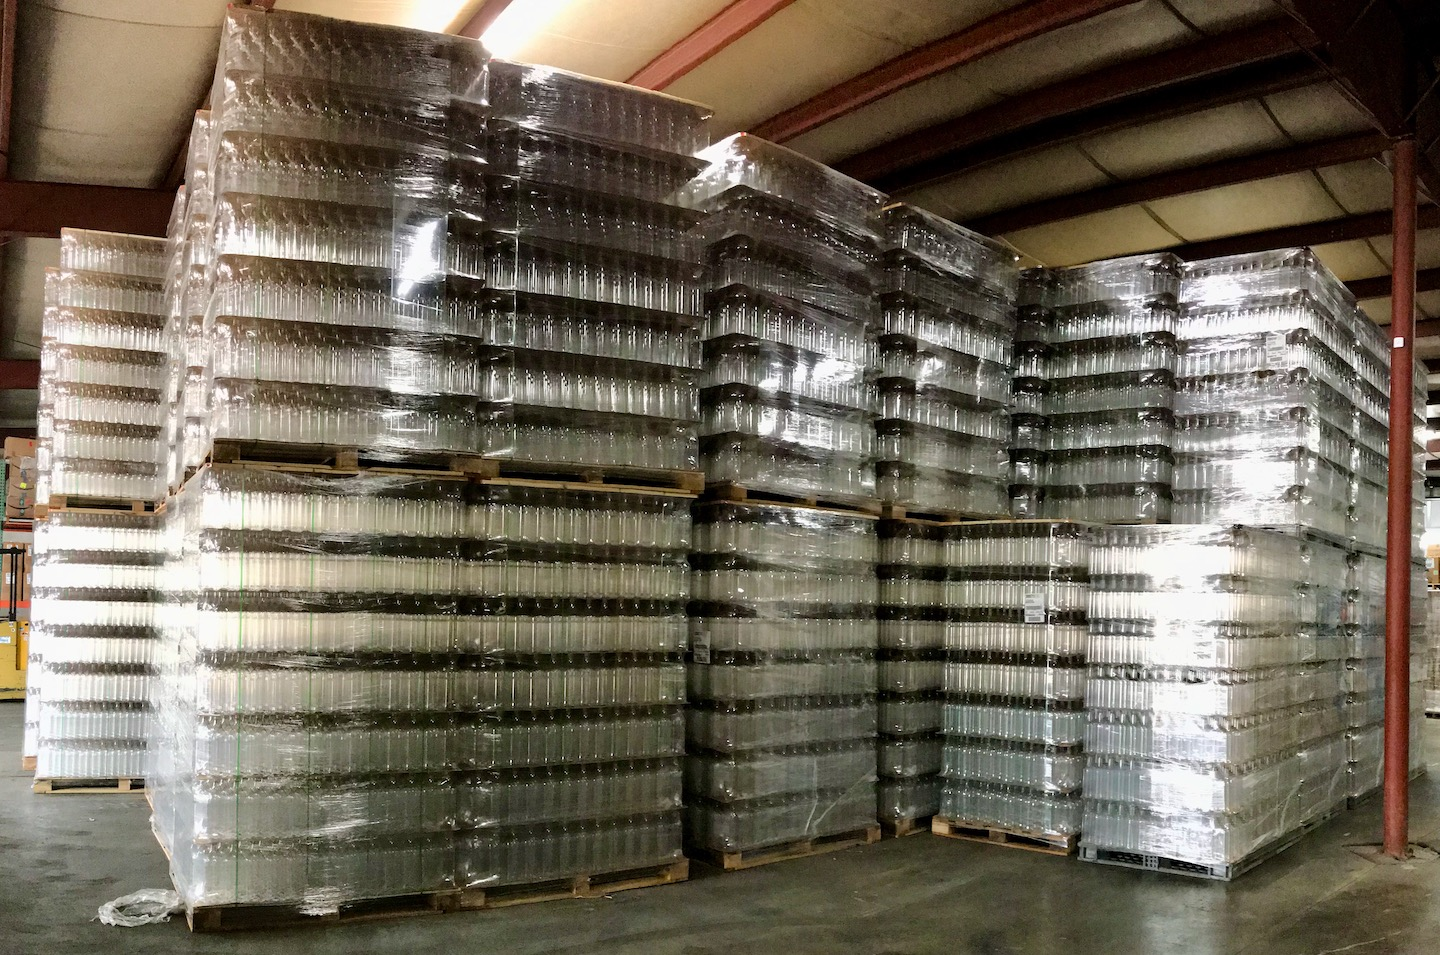 Picture of thousands of bottles